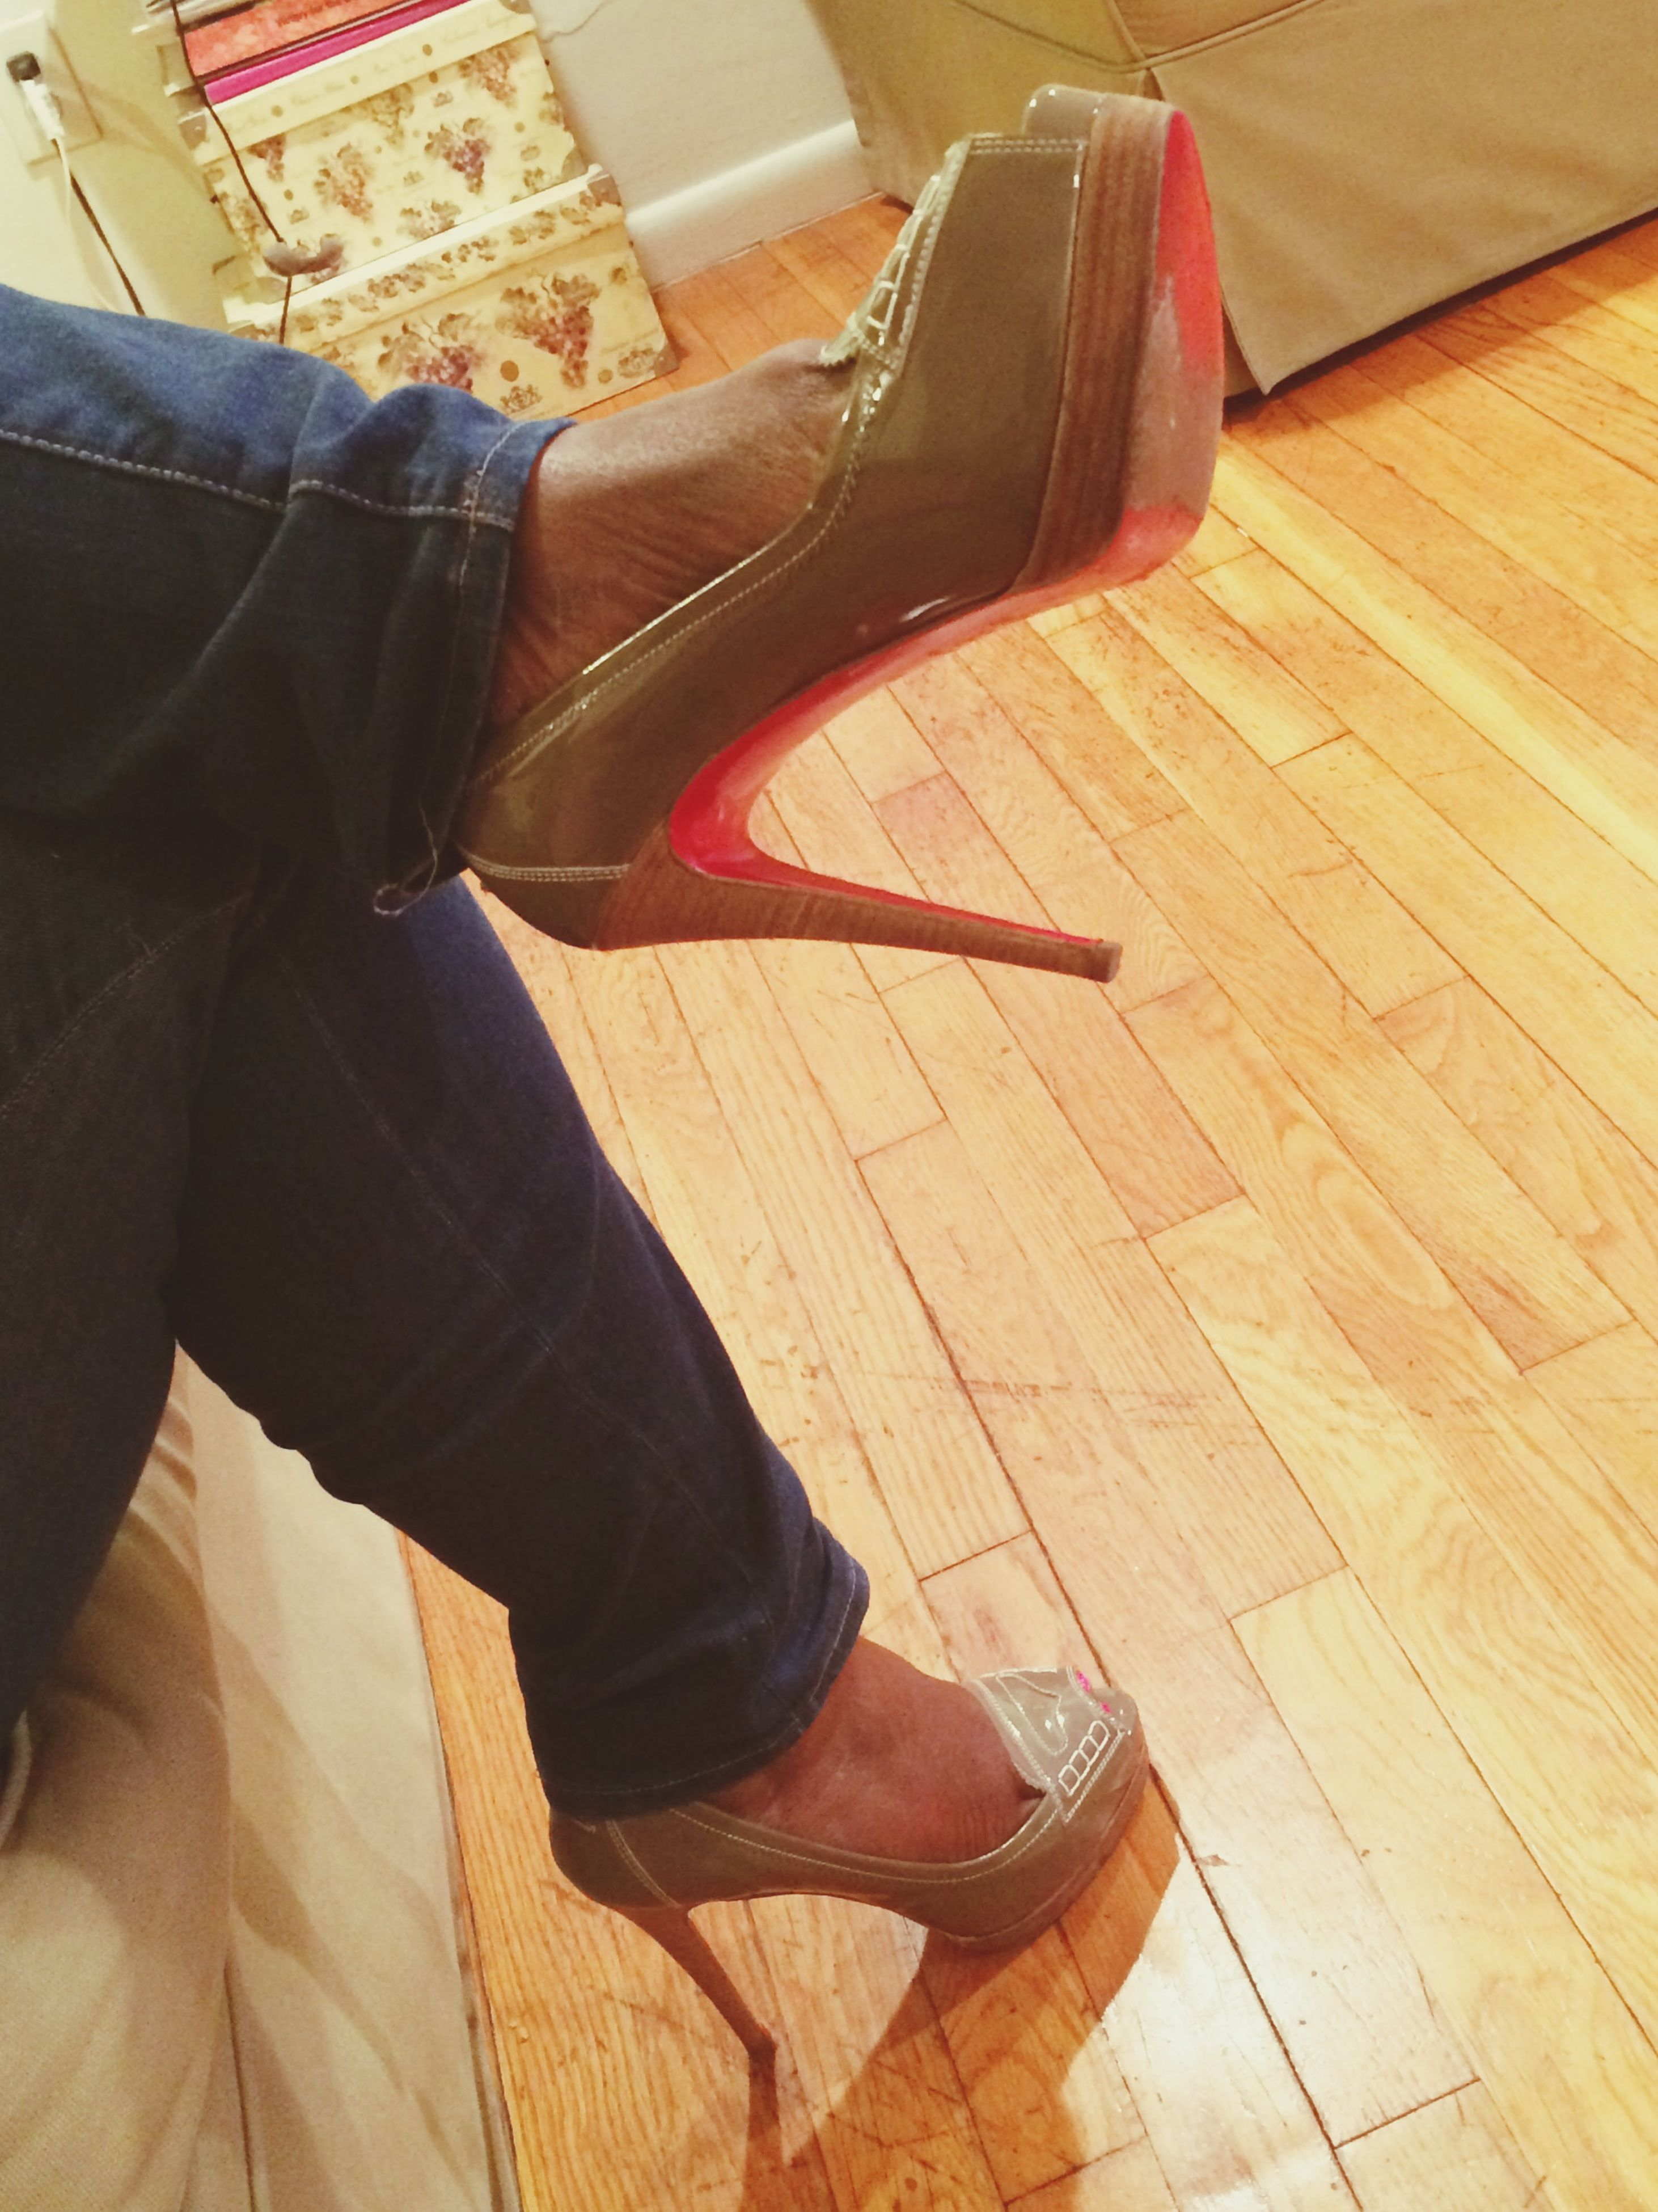 indoors, low section, person, shoe, high angle view, flooring, hardwood floor, lifestyles, relaxation, sitting, human foot, standing, footwear, wood - material, jeans, home interior, personal perspective, floor